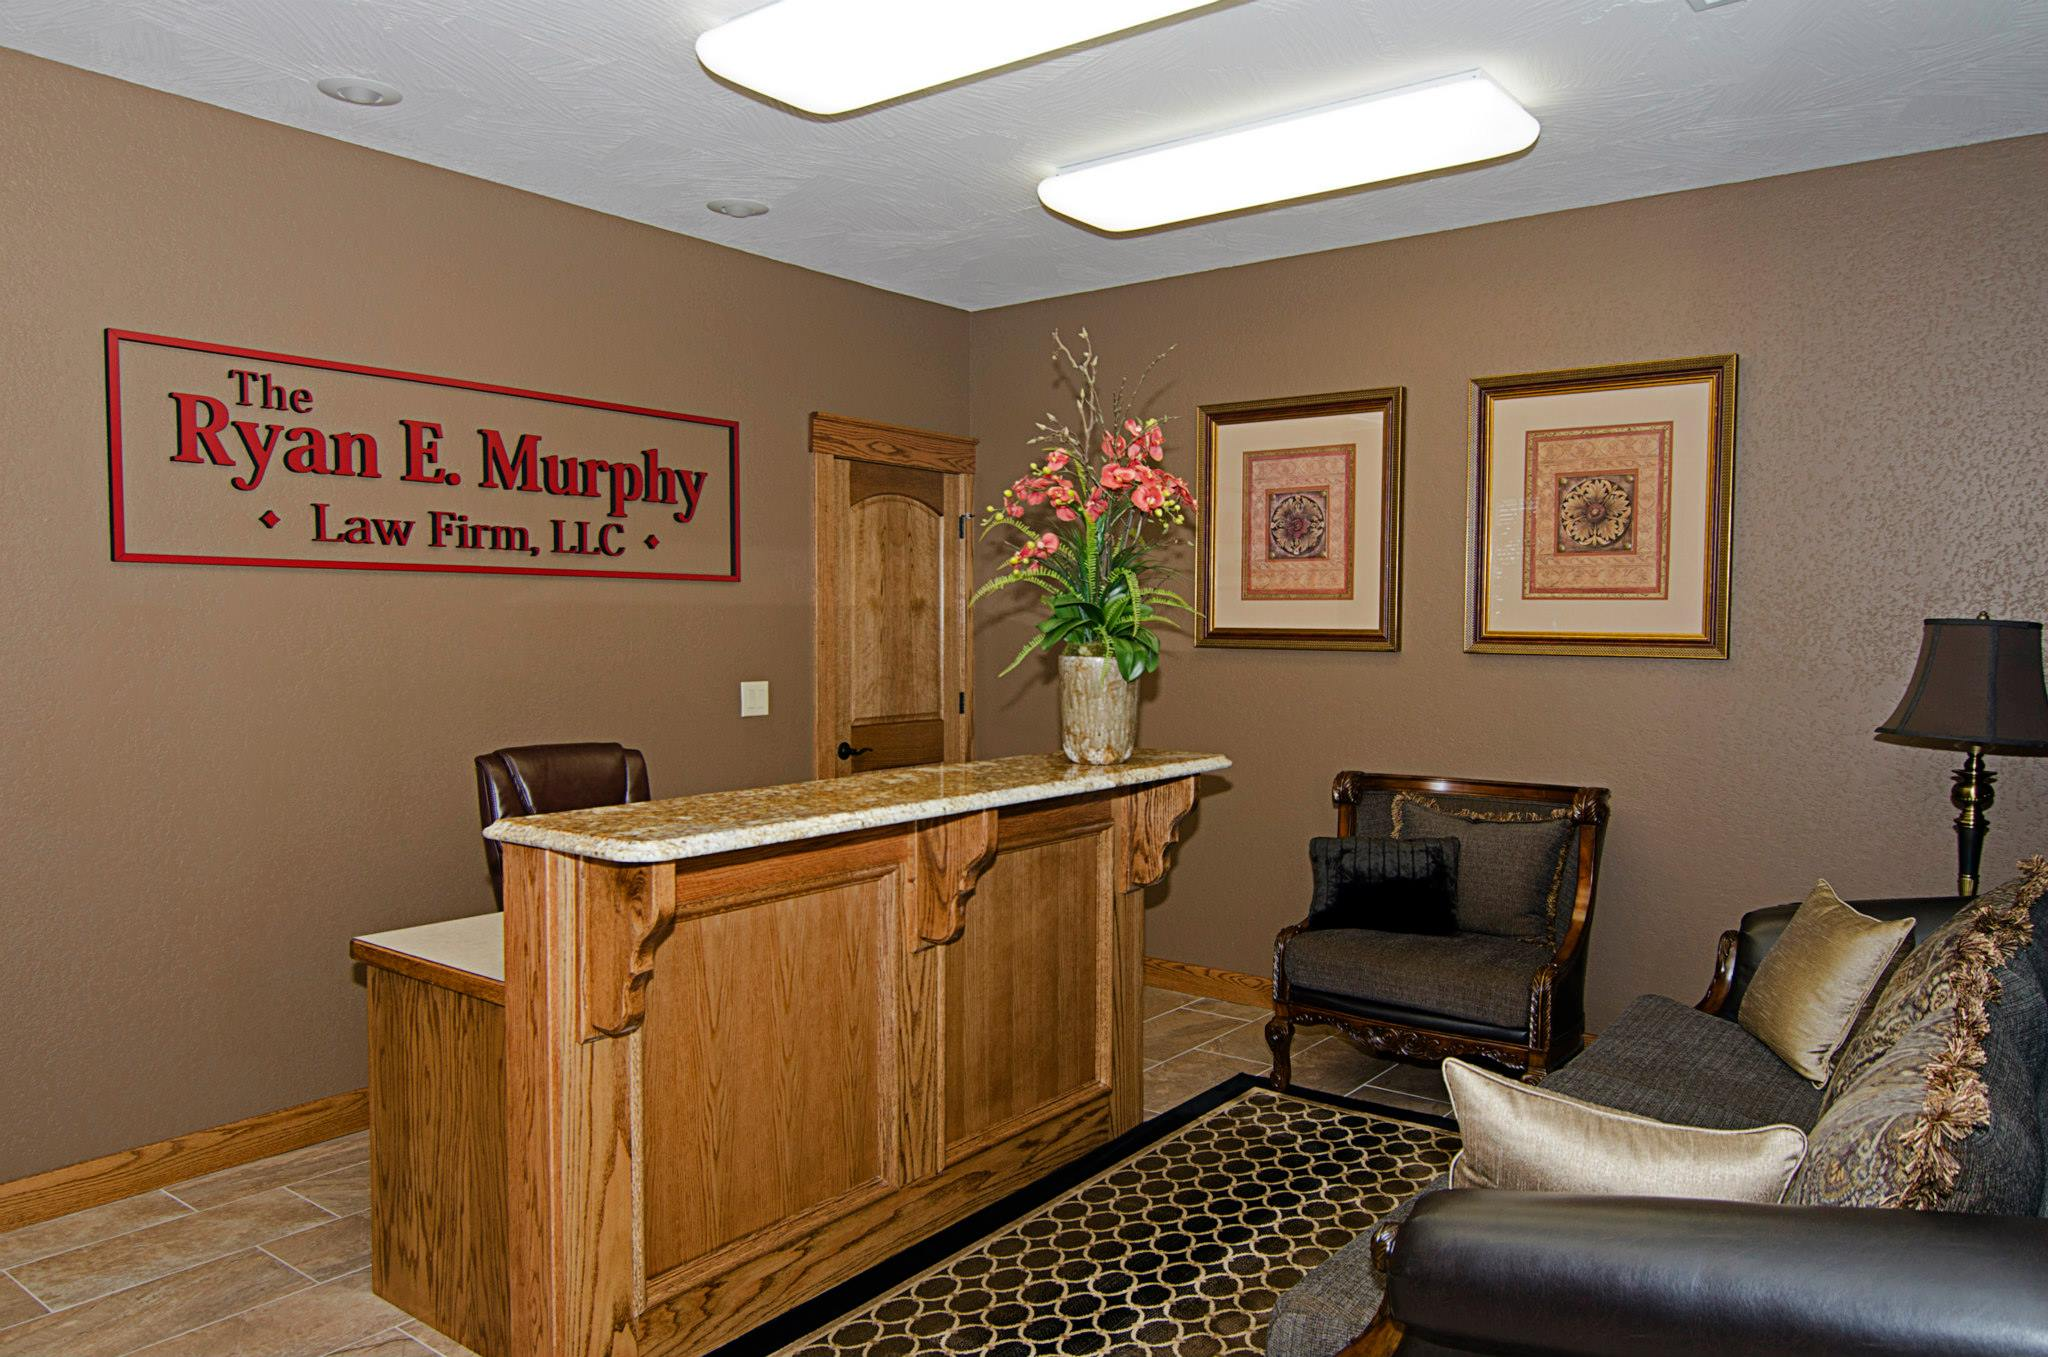 The Ryan E. Murphy Law Firm fourth image